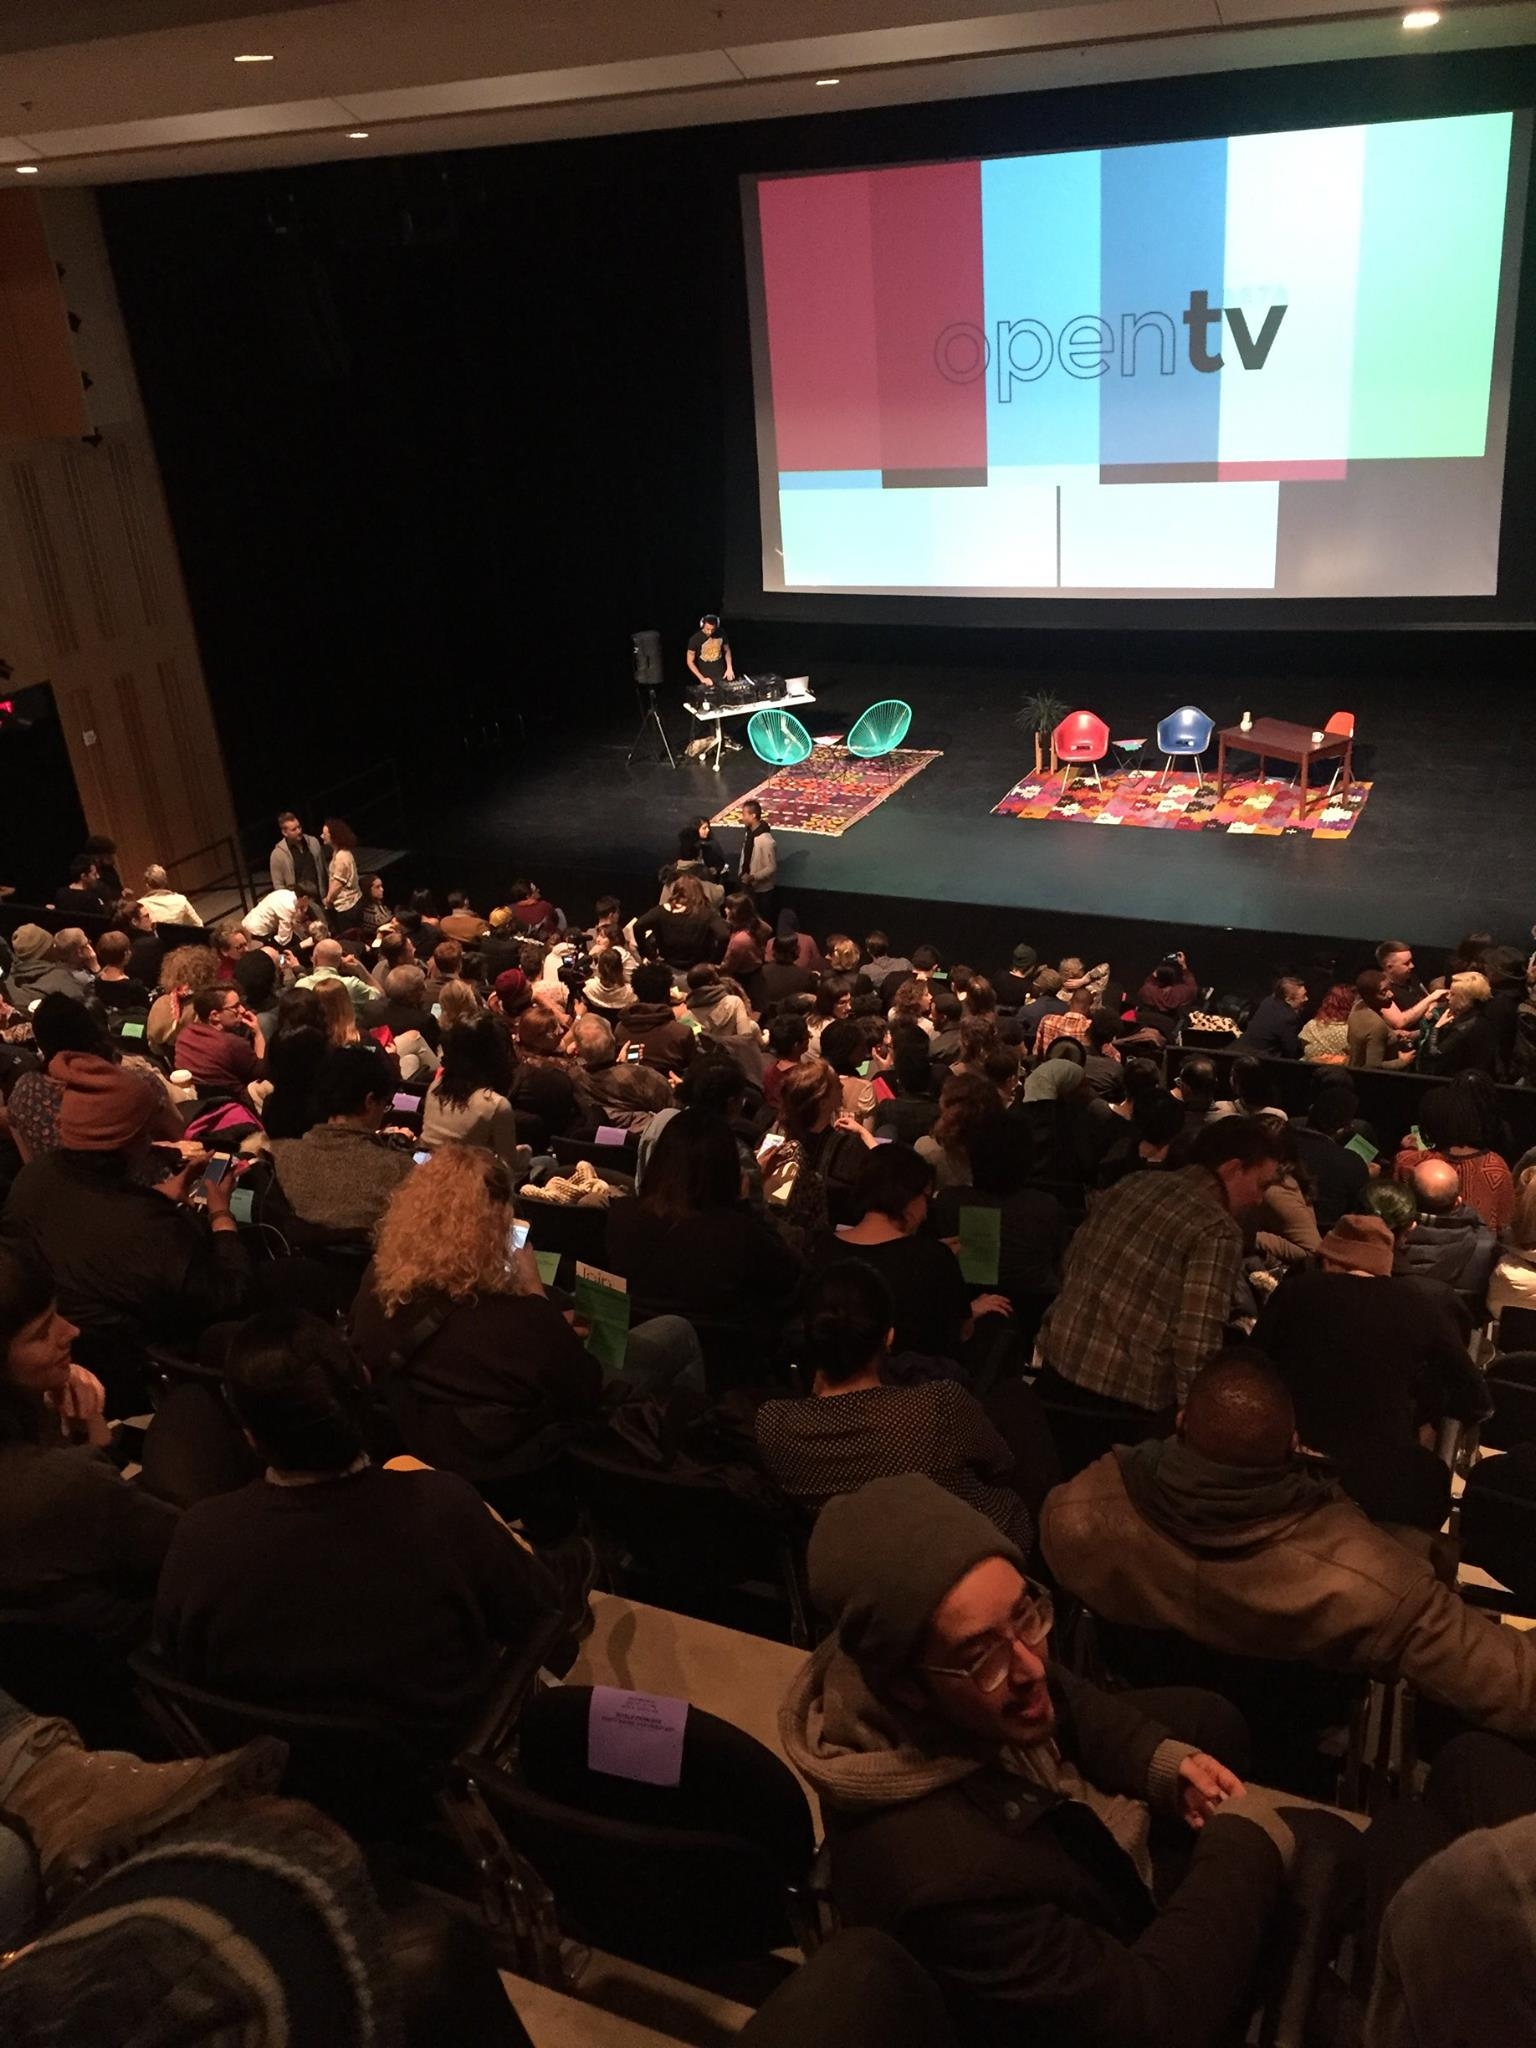 OpenTV Launch at Edlis Neeson Theater at the Museum of Contemporary Art